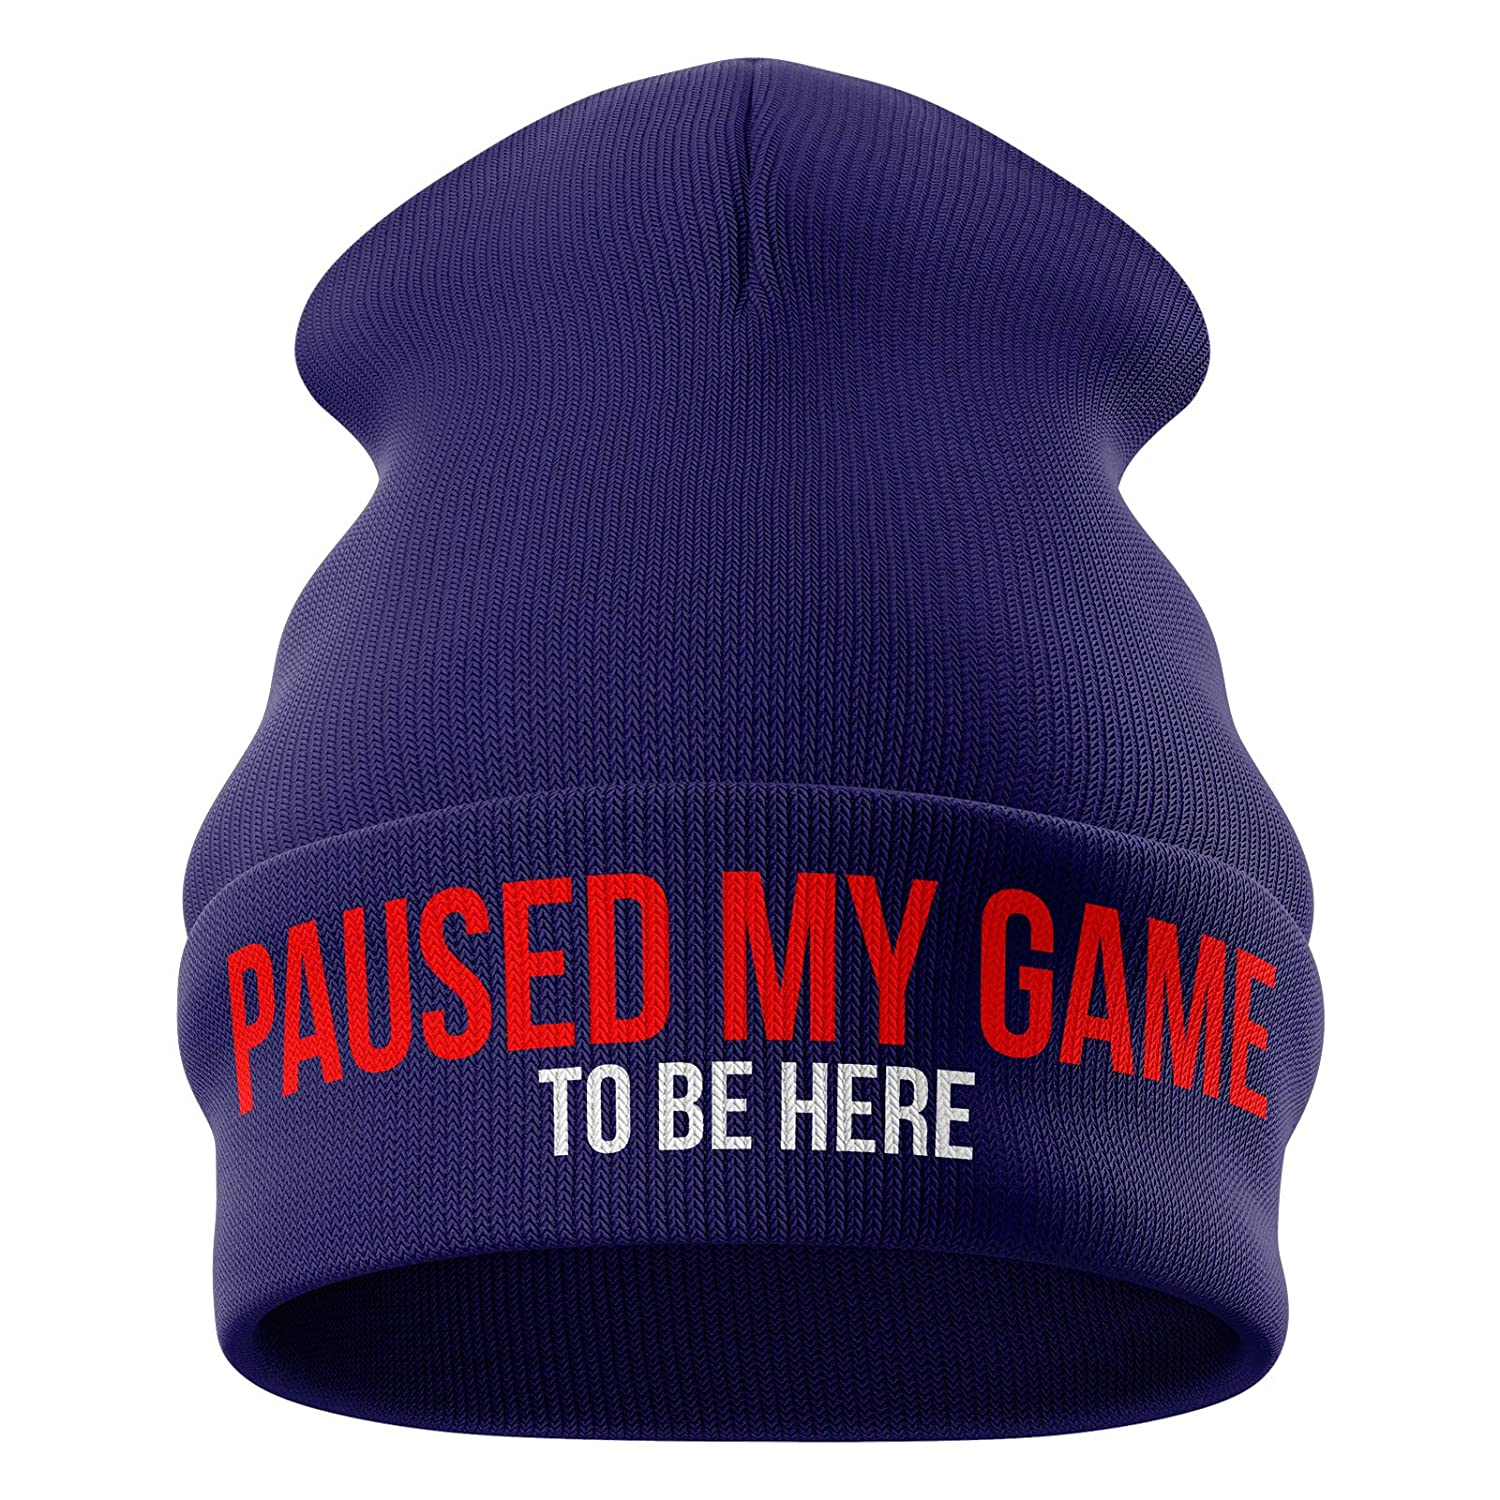 Gifts for Gamers - Paused My Game to be here Funny Beanie Hat - Gamer Gifts Gifts for him Gaming Gifts